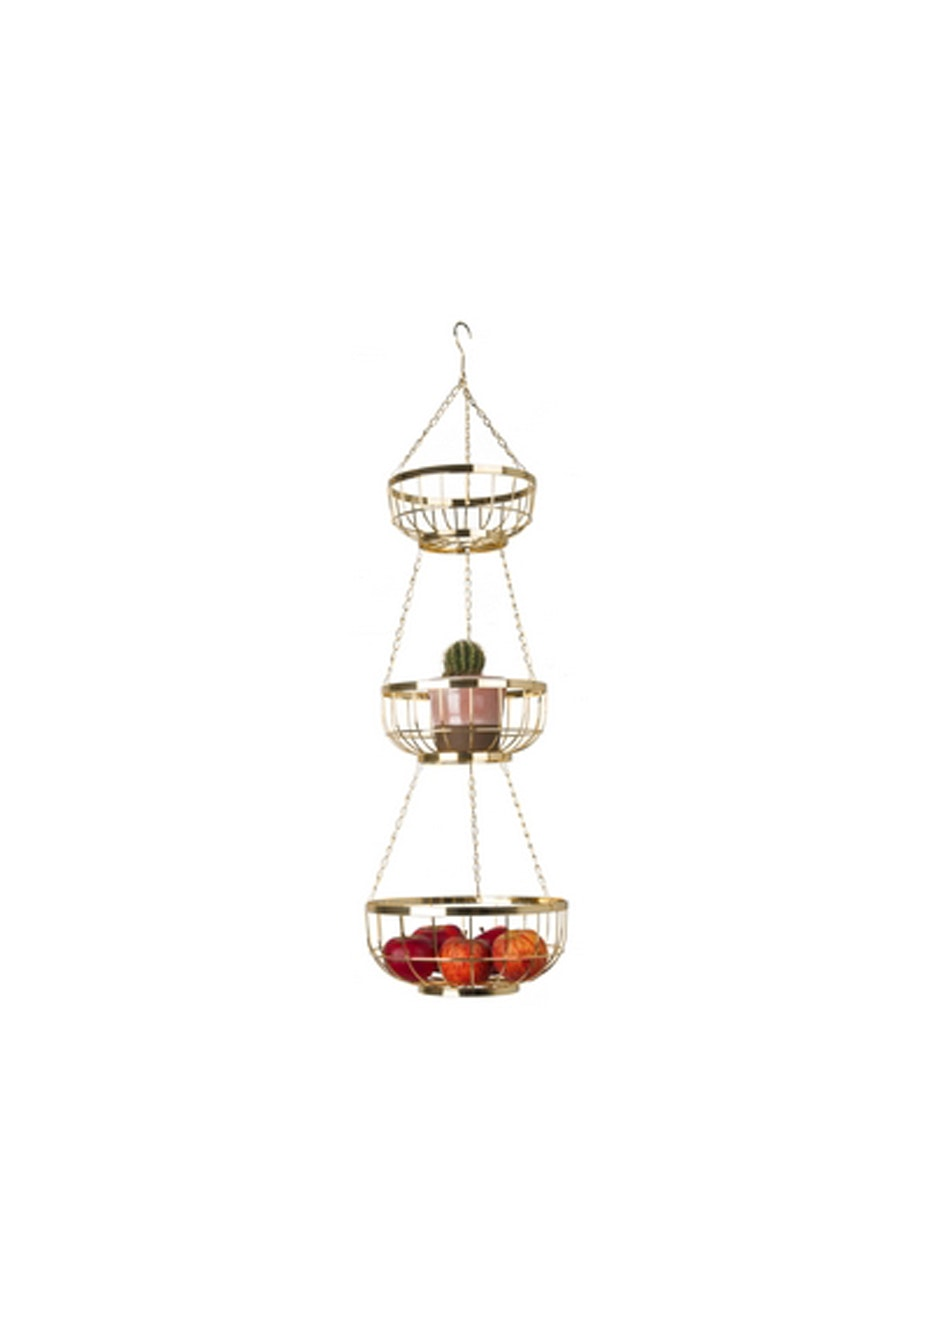 Pt Home - Set of 3 Hanging Baskets - Gold